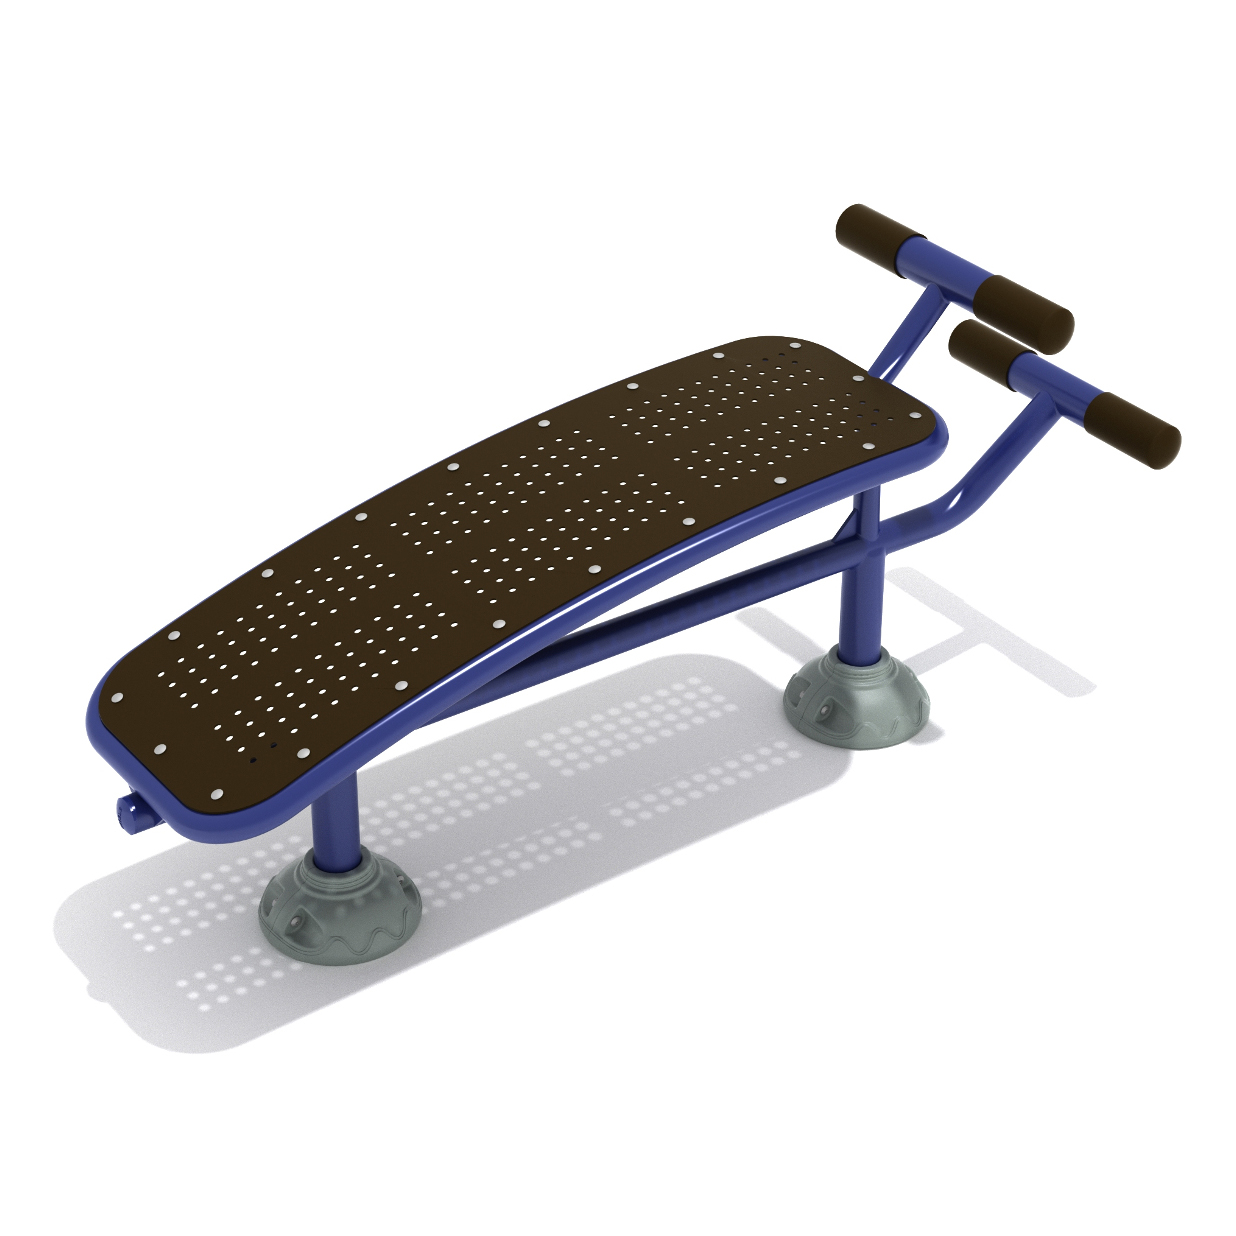 Single Sit Up Bench Outdoor Fitness By Playground Equipment Dot Com Aaa State Of Play